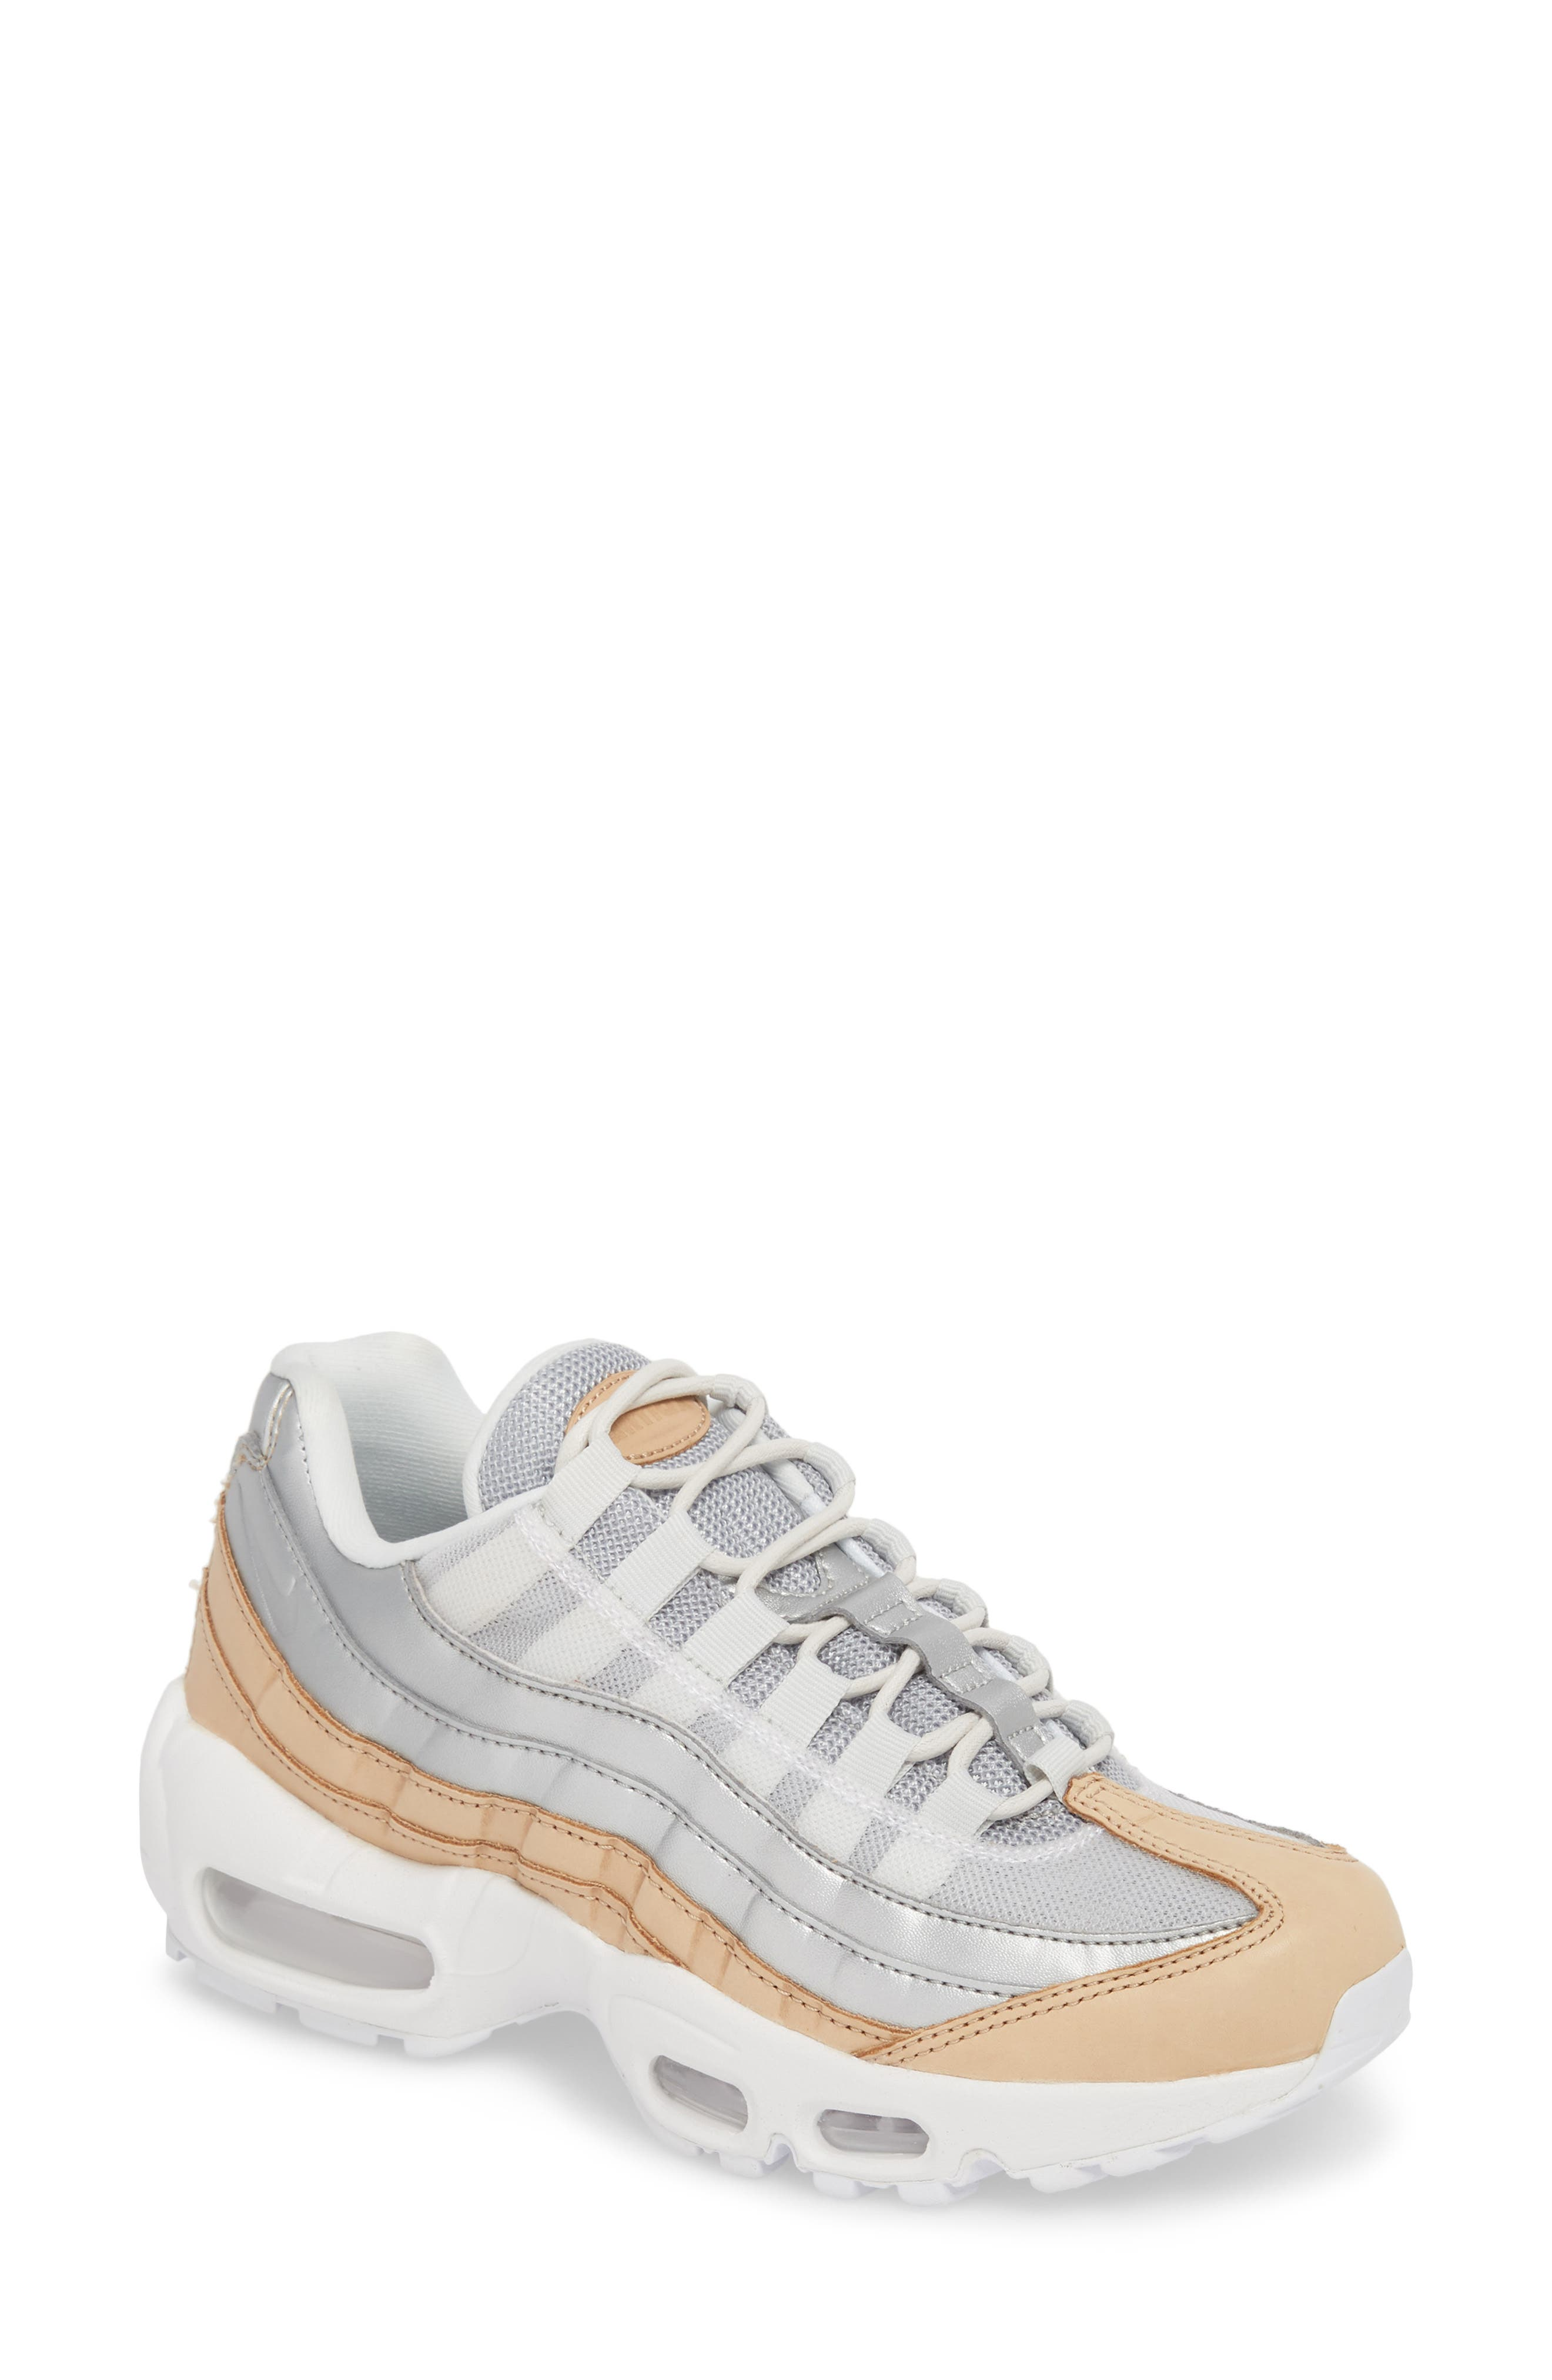 Air Max 95 Special Edition Running Shoe,                         Main,                         color, PLATINUM/ SILVER/ WHITE